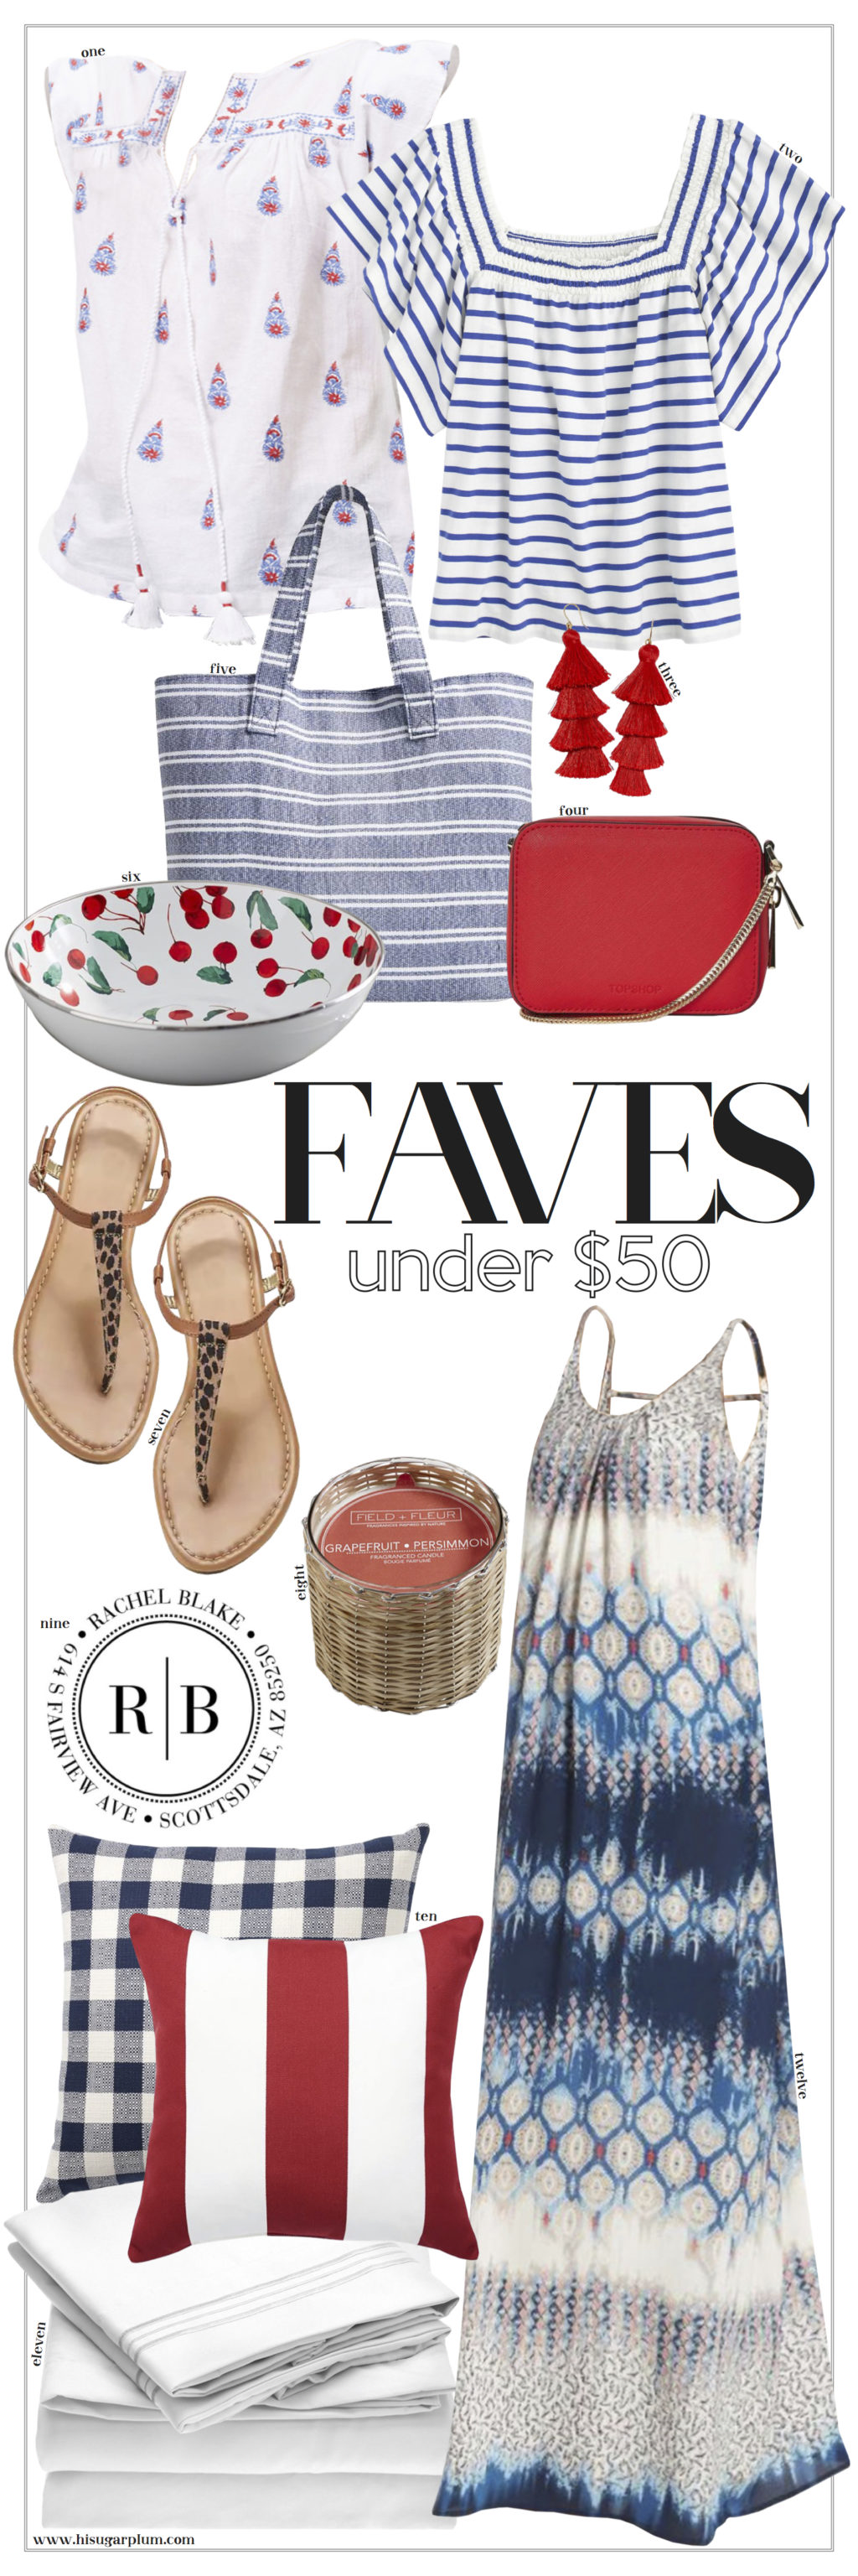 favorite finds under $50 fourth of july